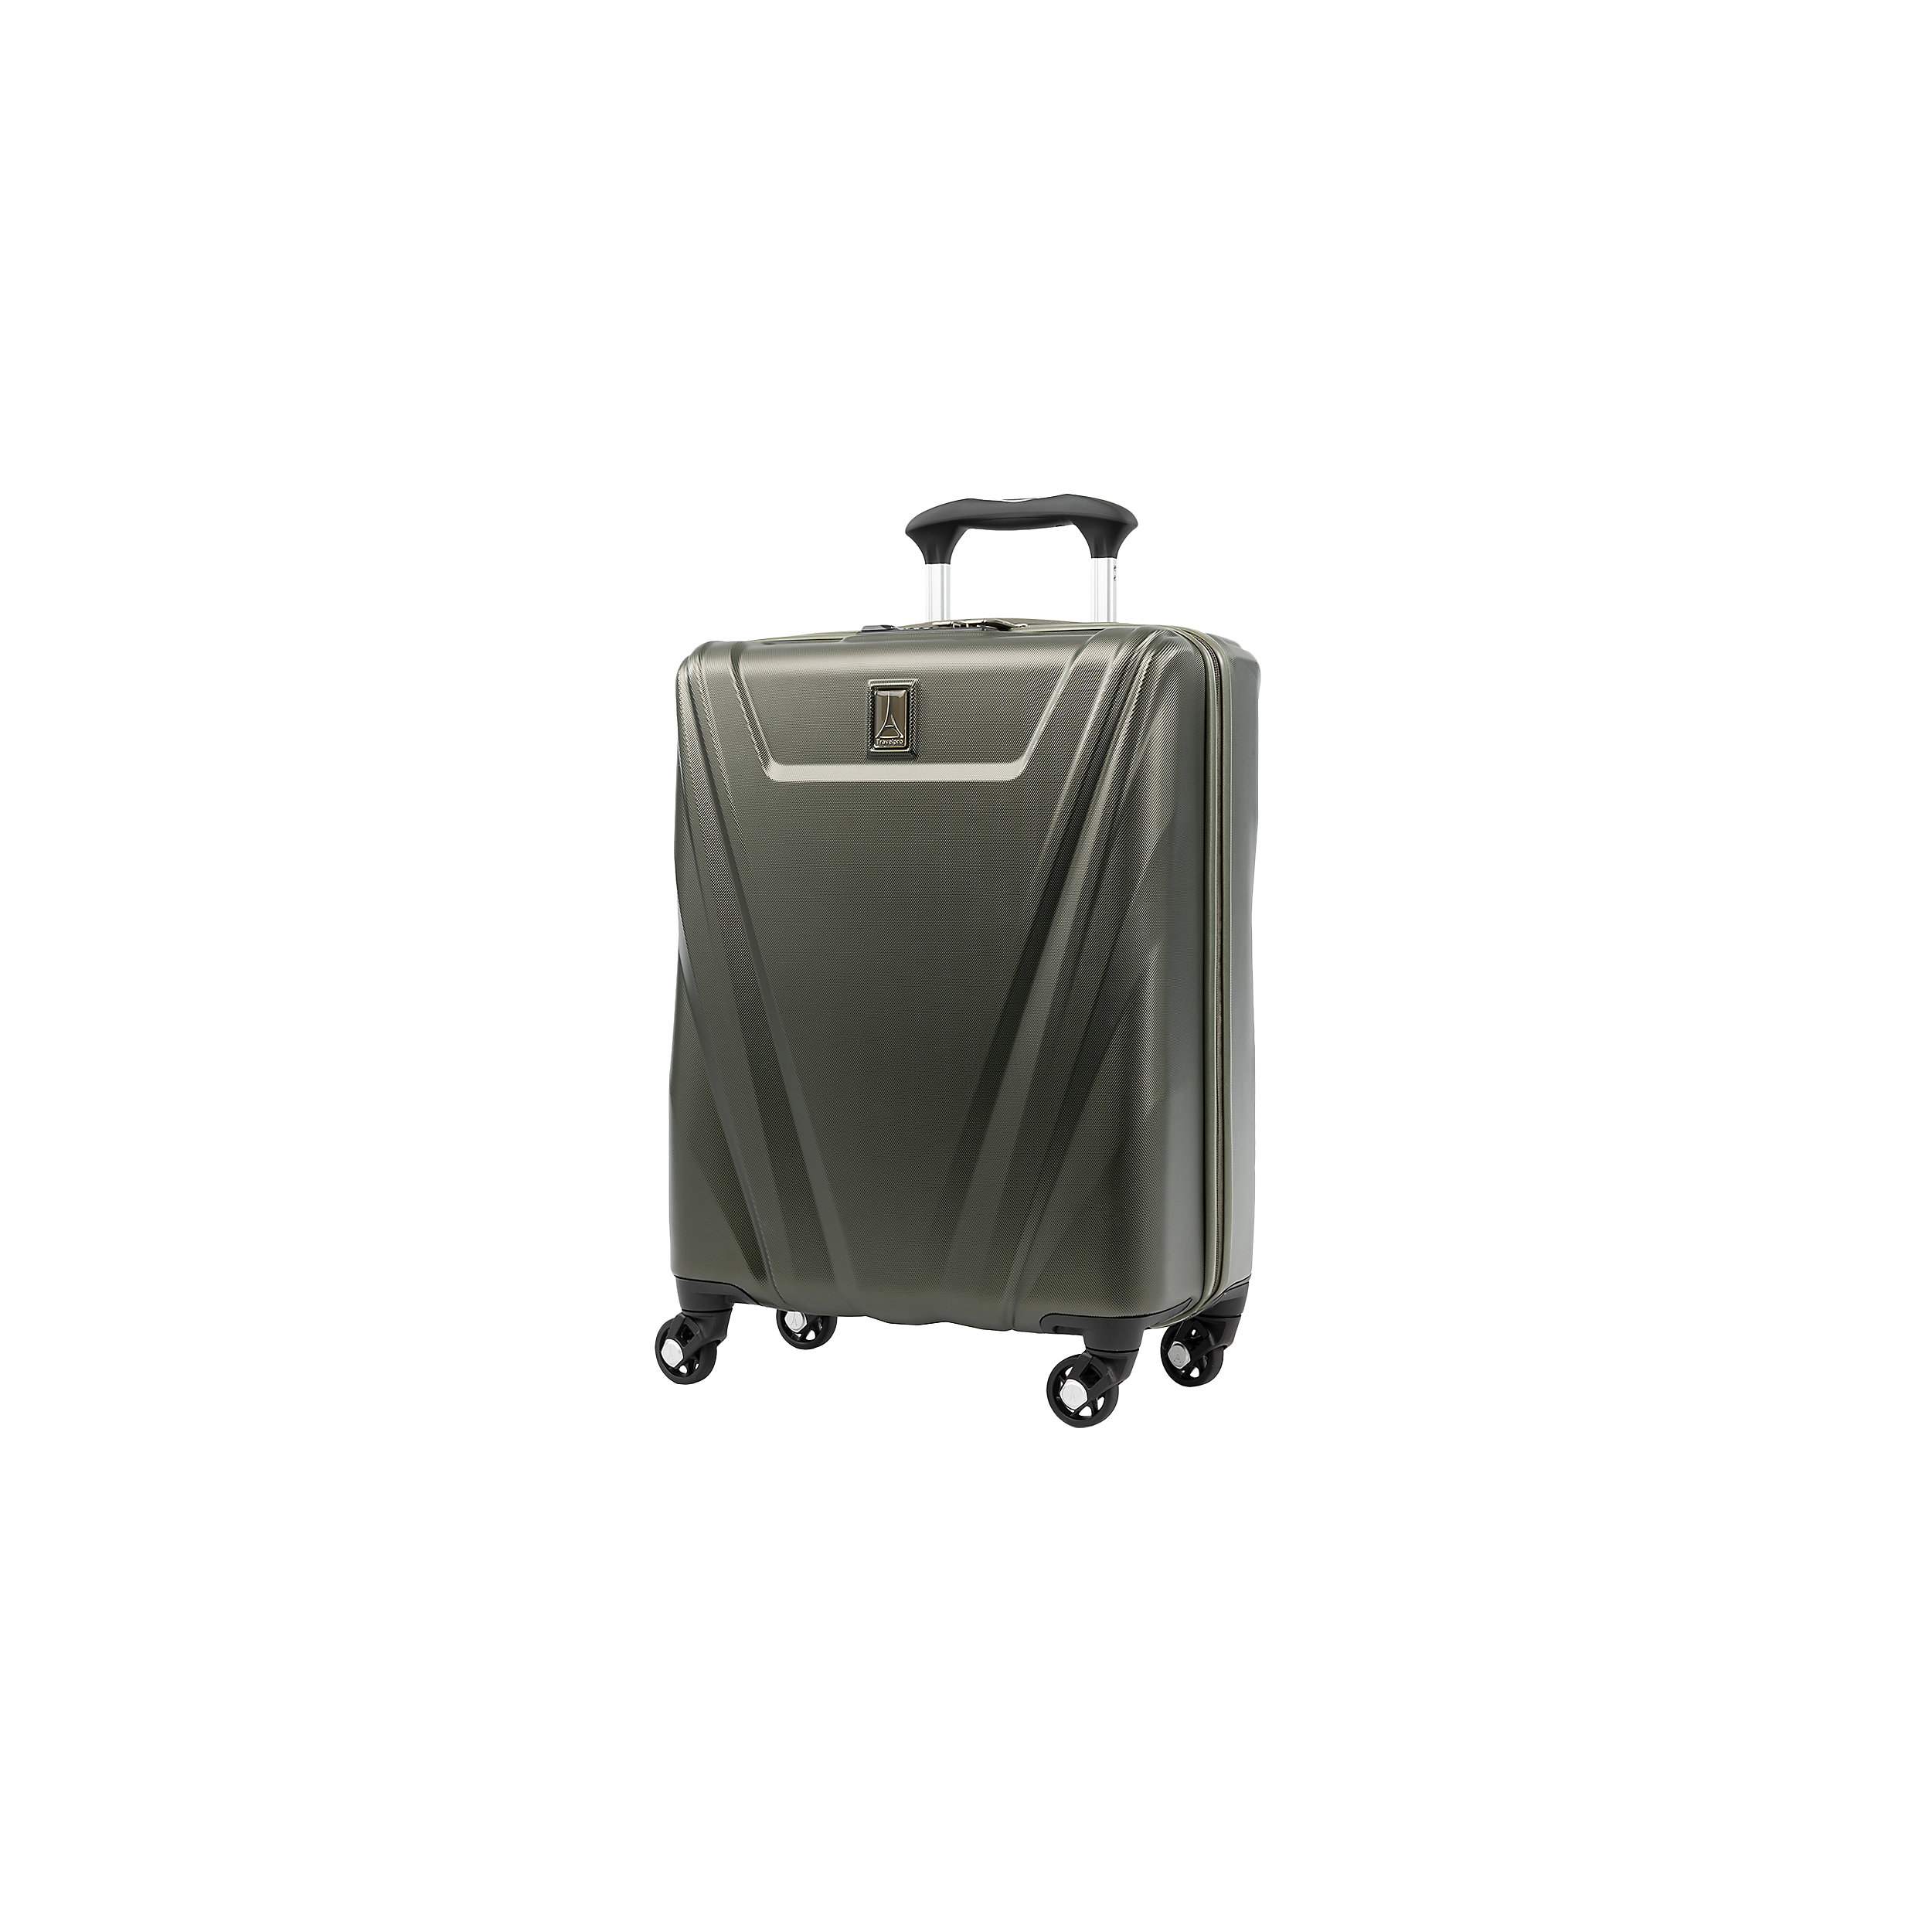 Carry-on with 4 wheels 55 cm Hardside Maxlite 5 Small 42 Liter